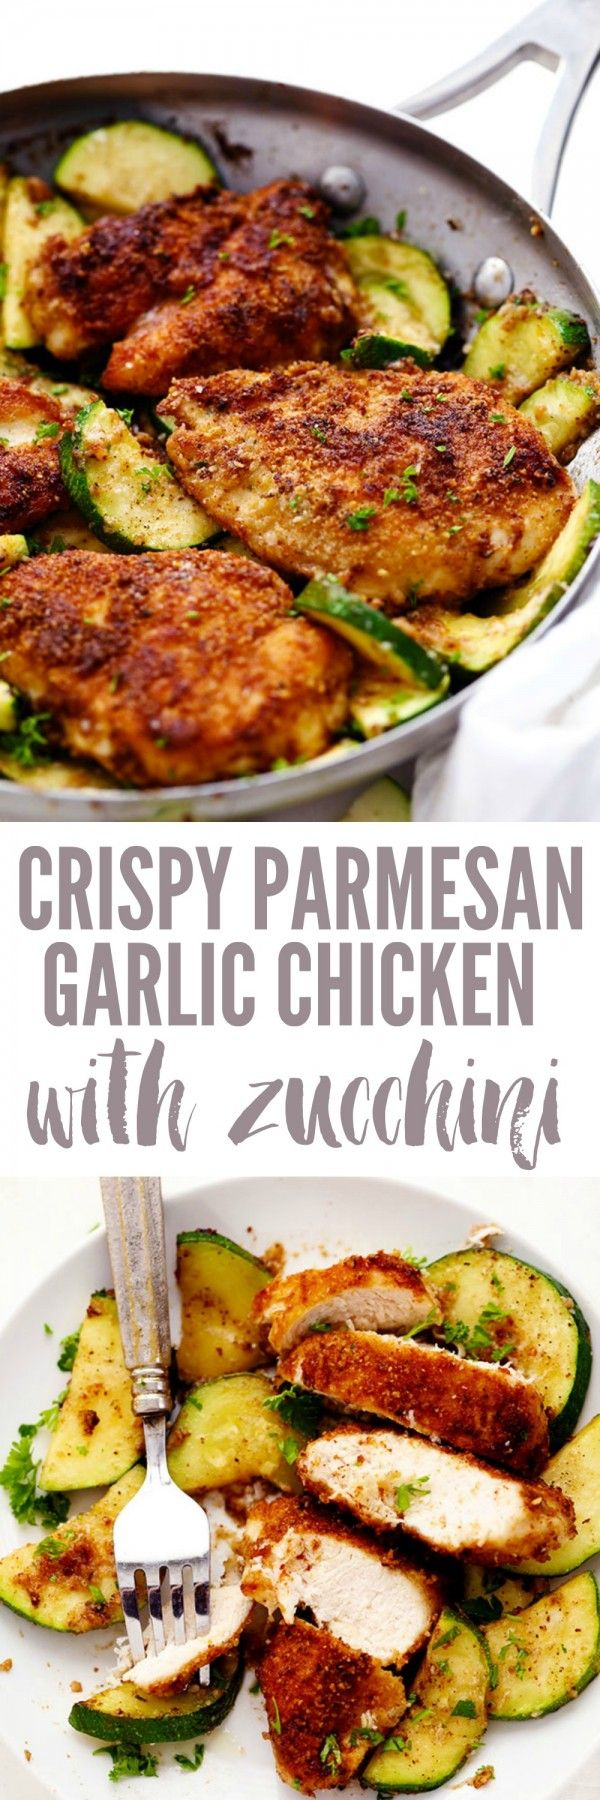 Get the recipe Crispy Parmesan Garlic Chicken with Zucchini @recipes_to_go